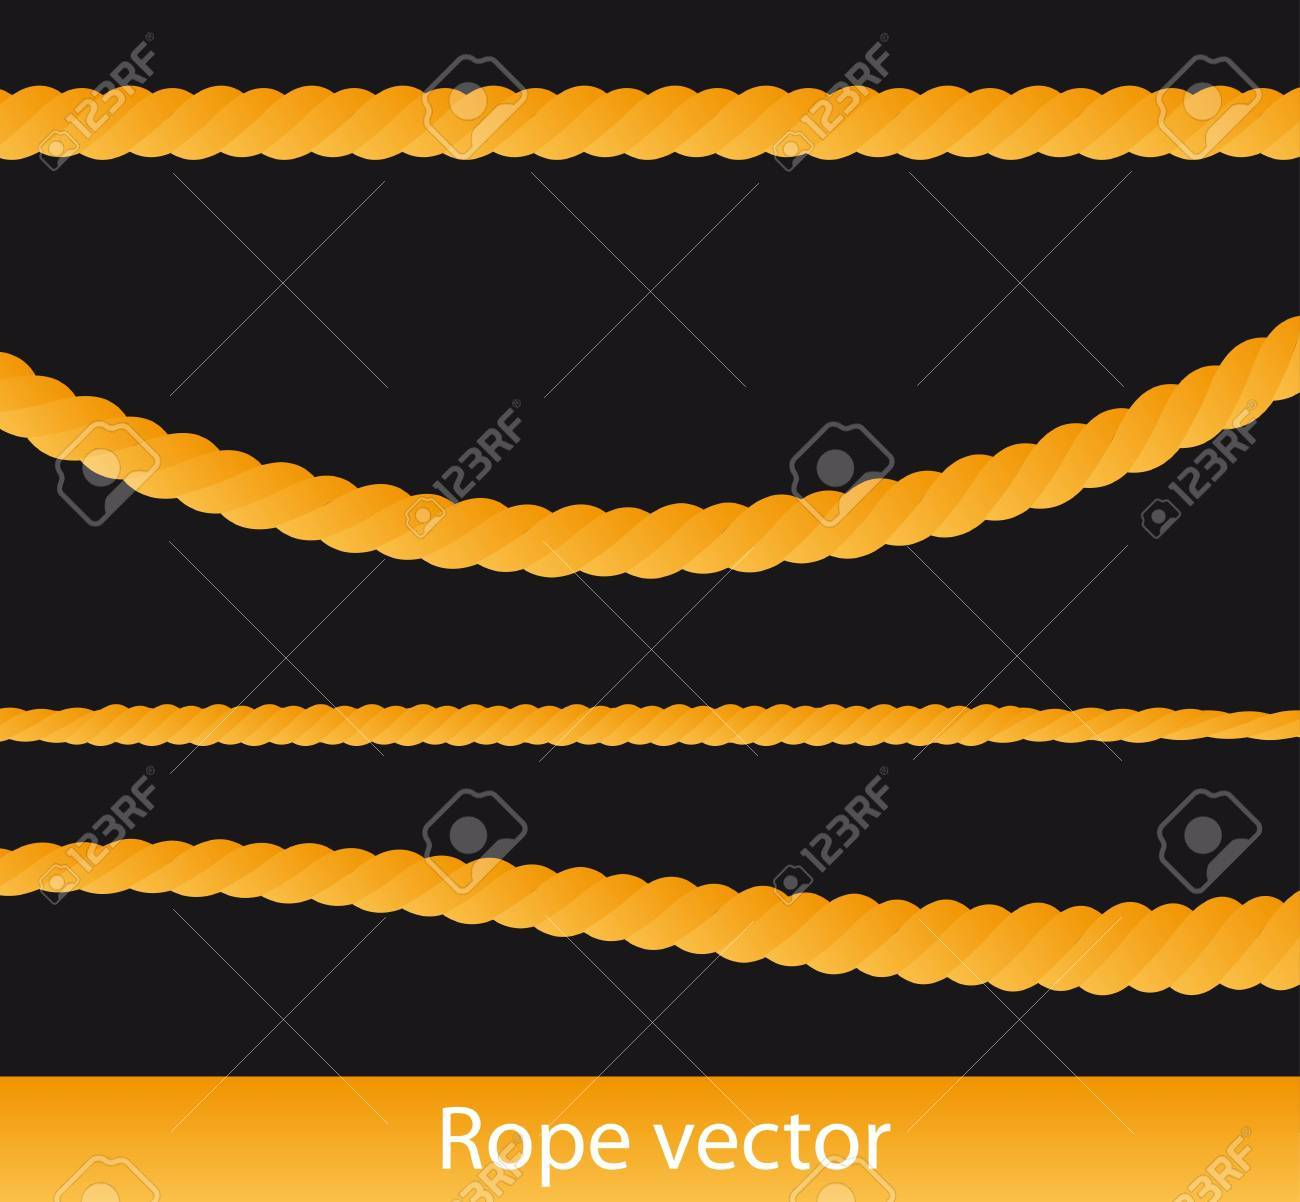 yello rope isolated over black background. Stock Vector - 13331844